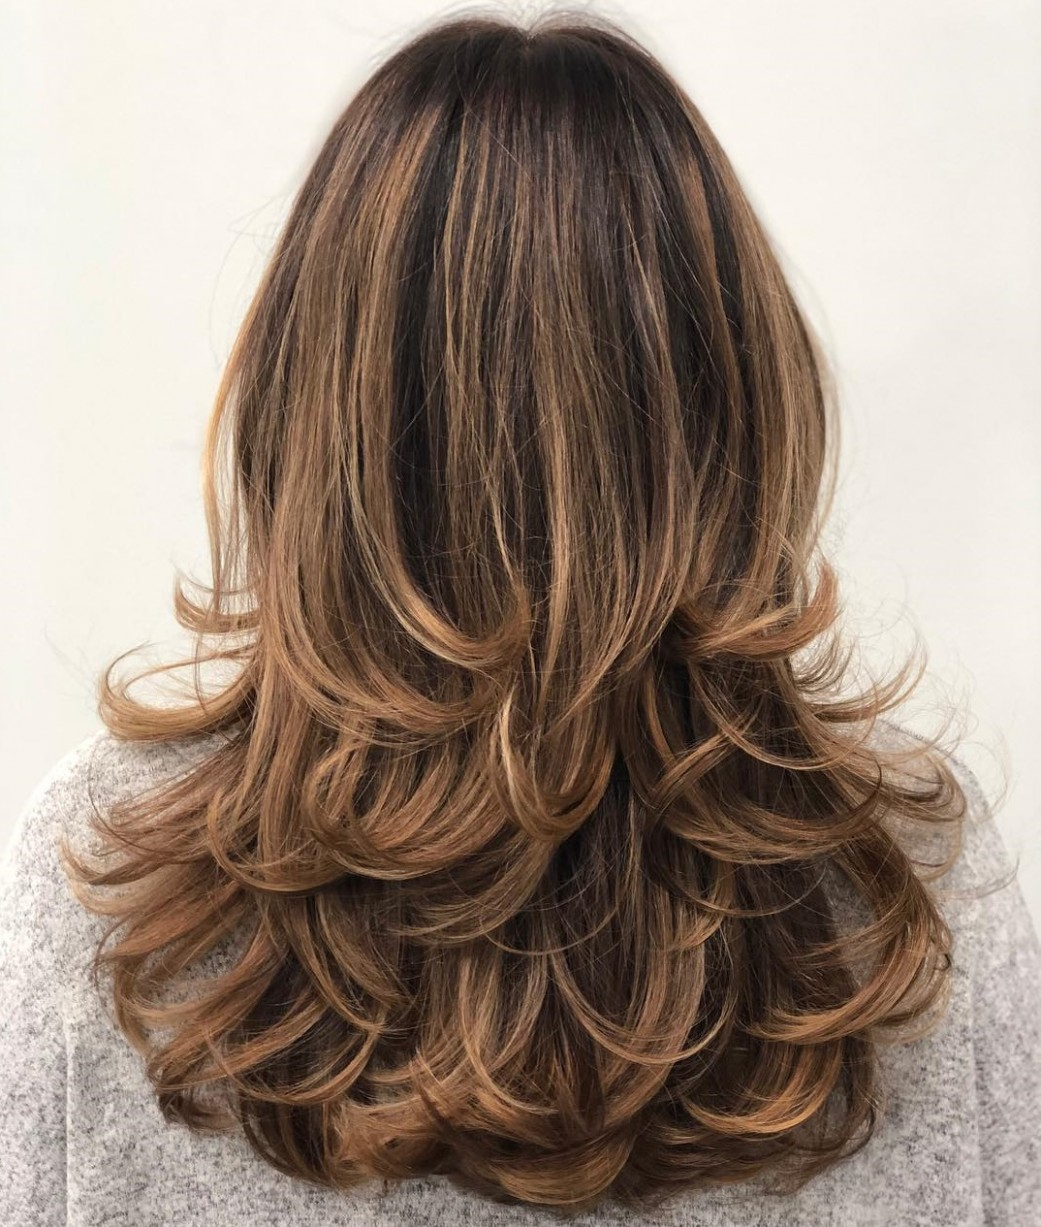 10 NEW Long Hairstyles With Layers For 10 Hair Adviser Low Maintenance Long Haircuts